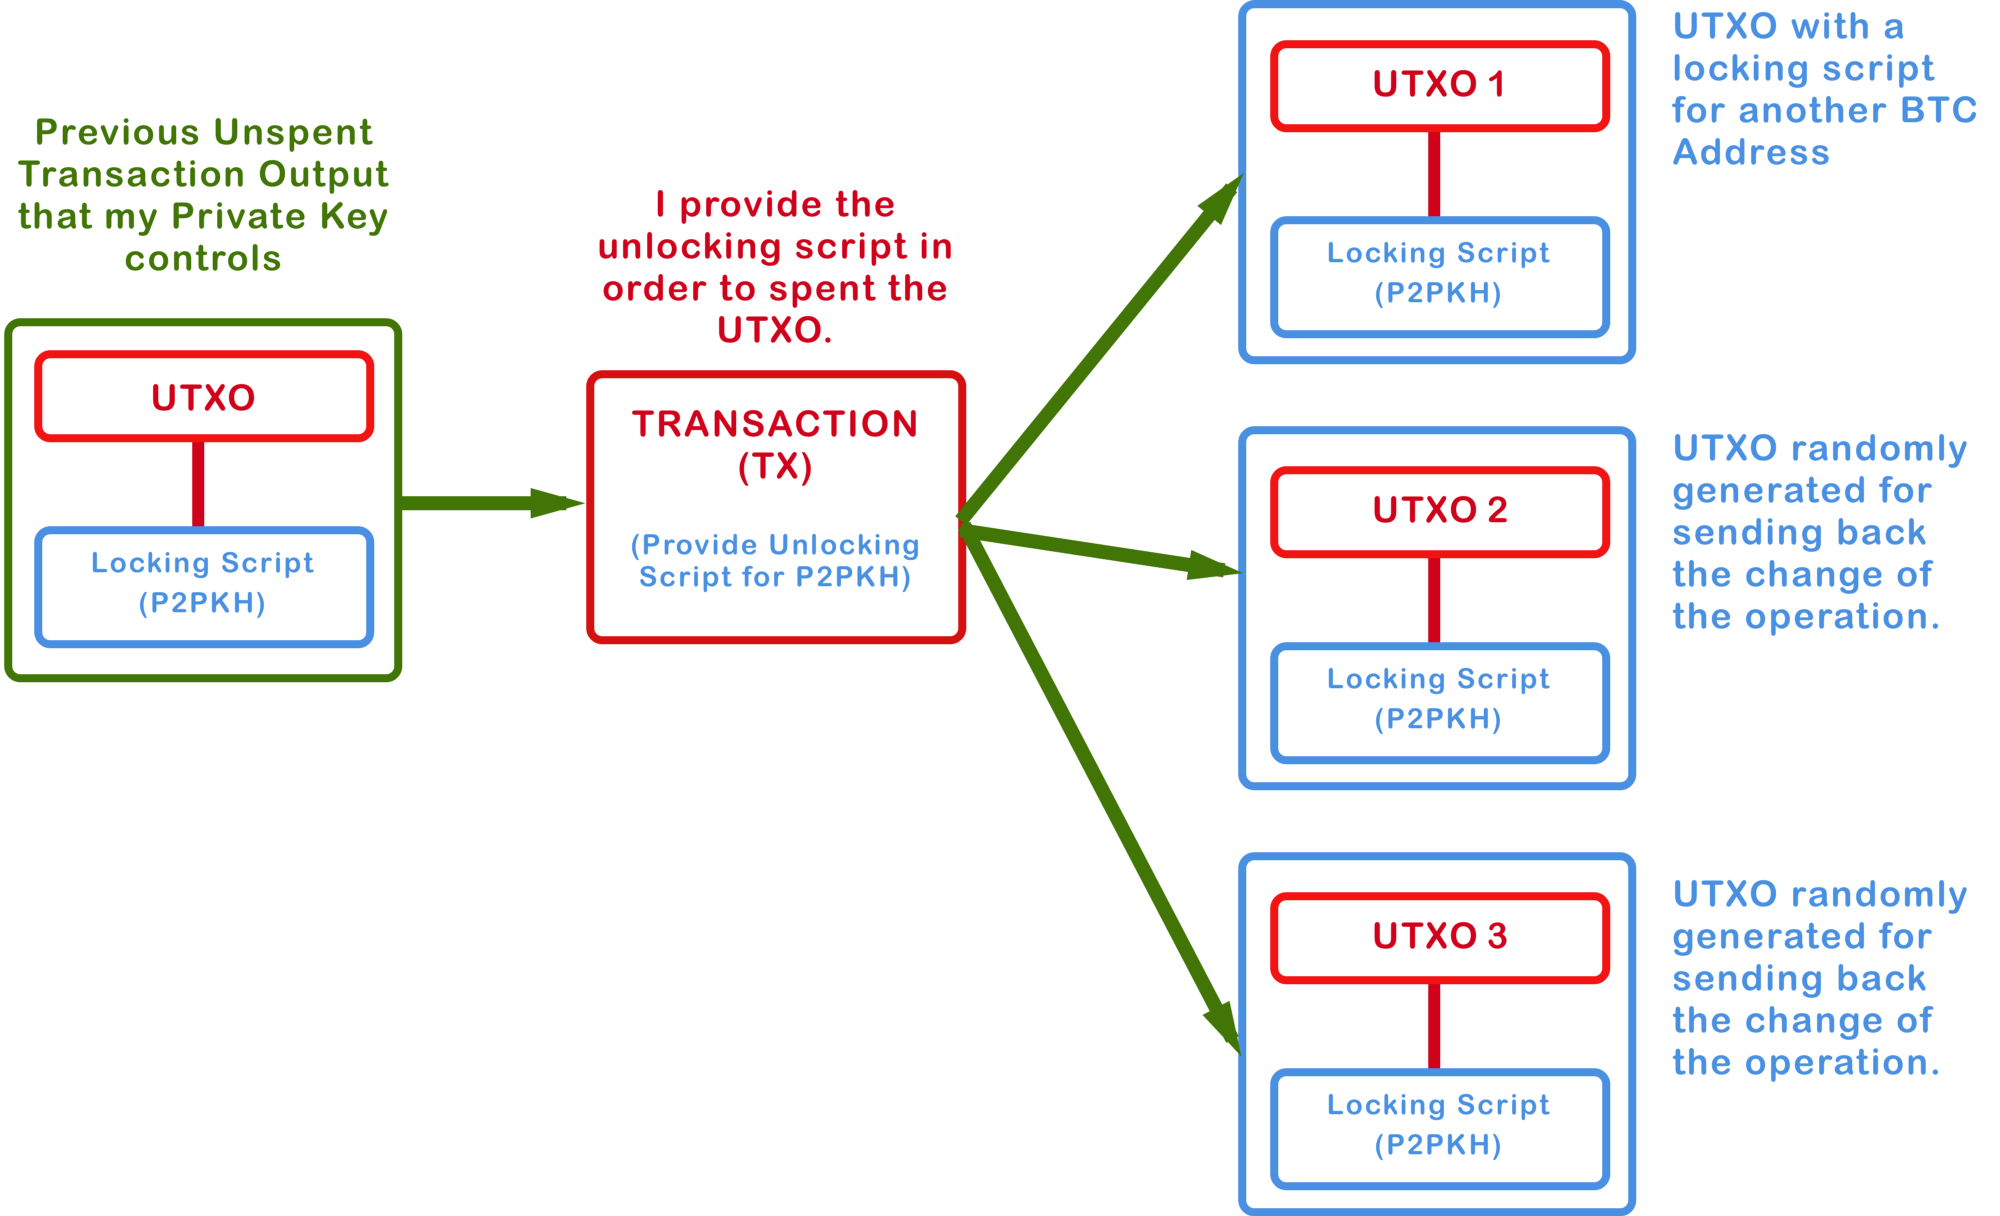 This Is A Chart Showing The Concept Of Transaction